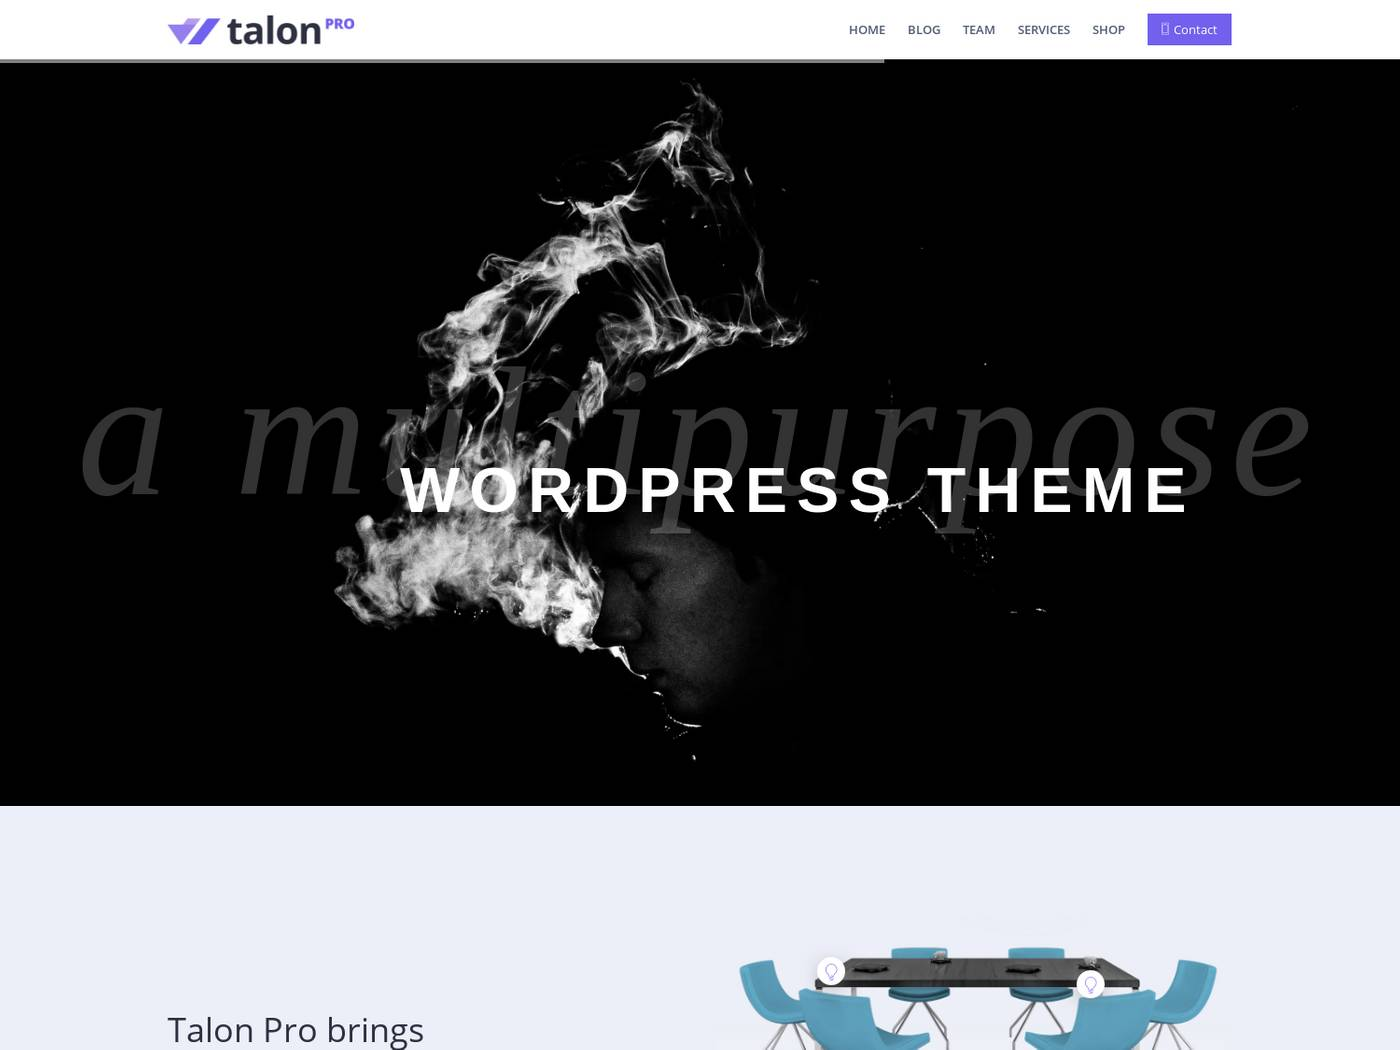 Talon Pro screenshot